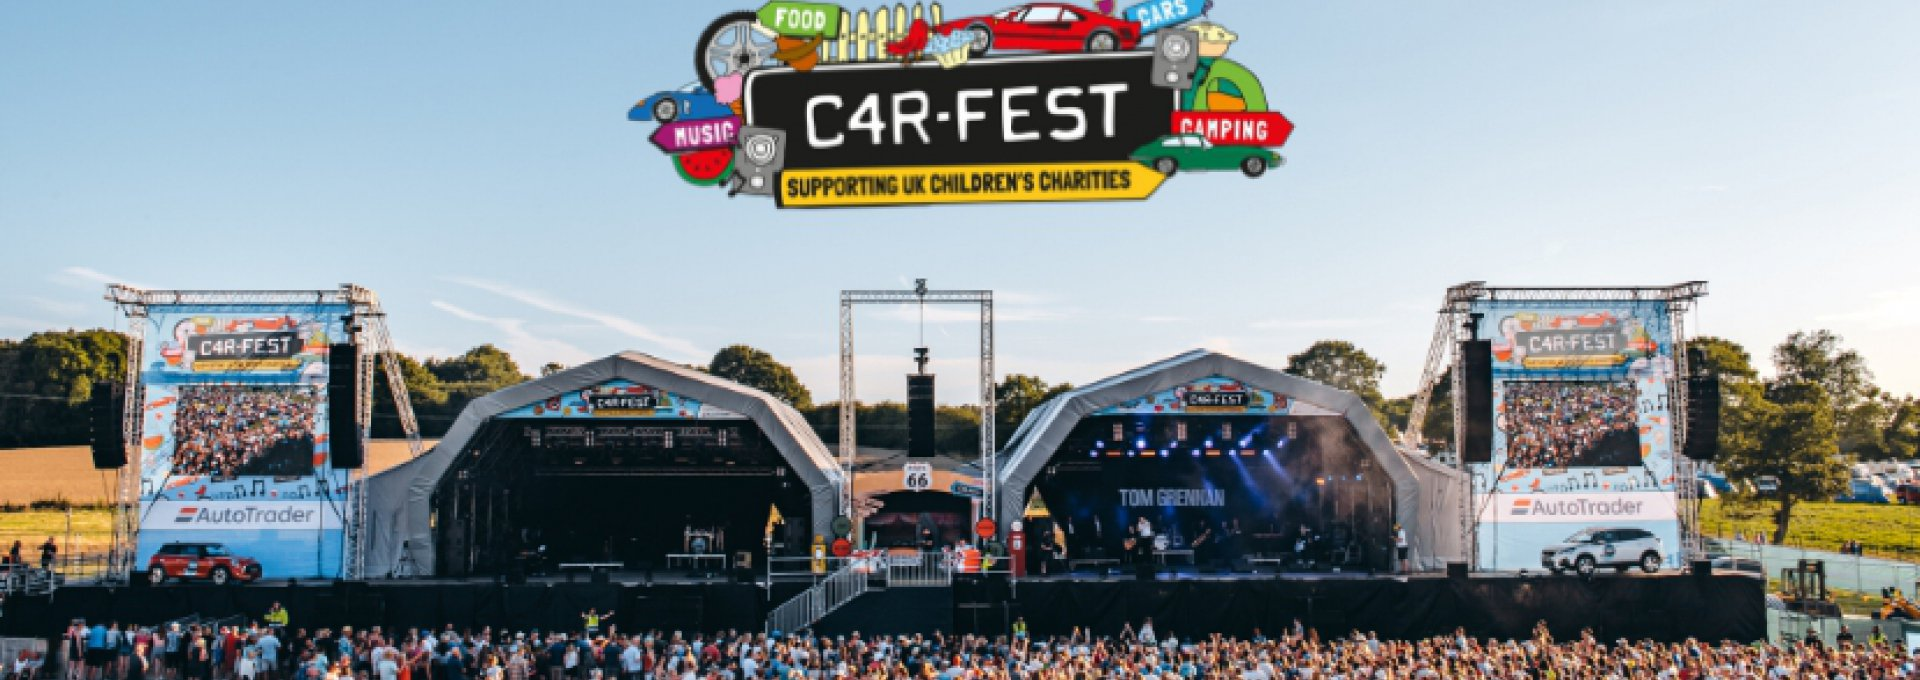 Carfest 2019 Two Stages